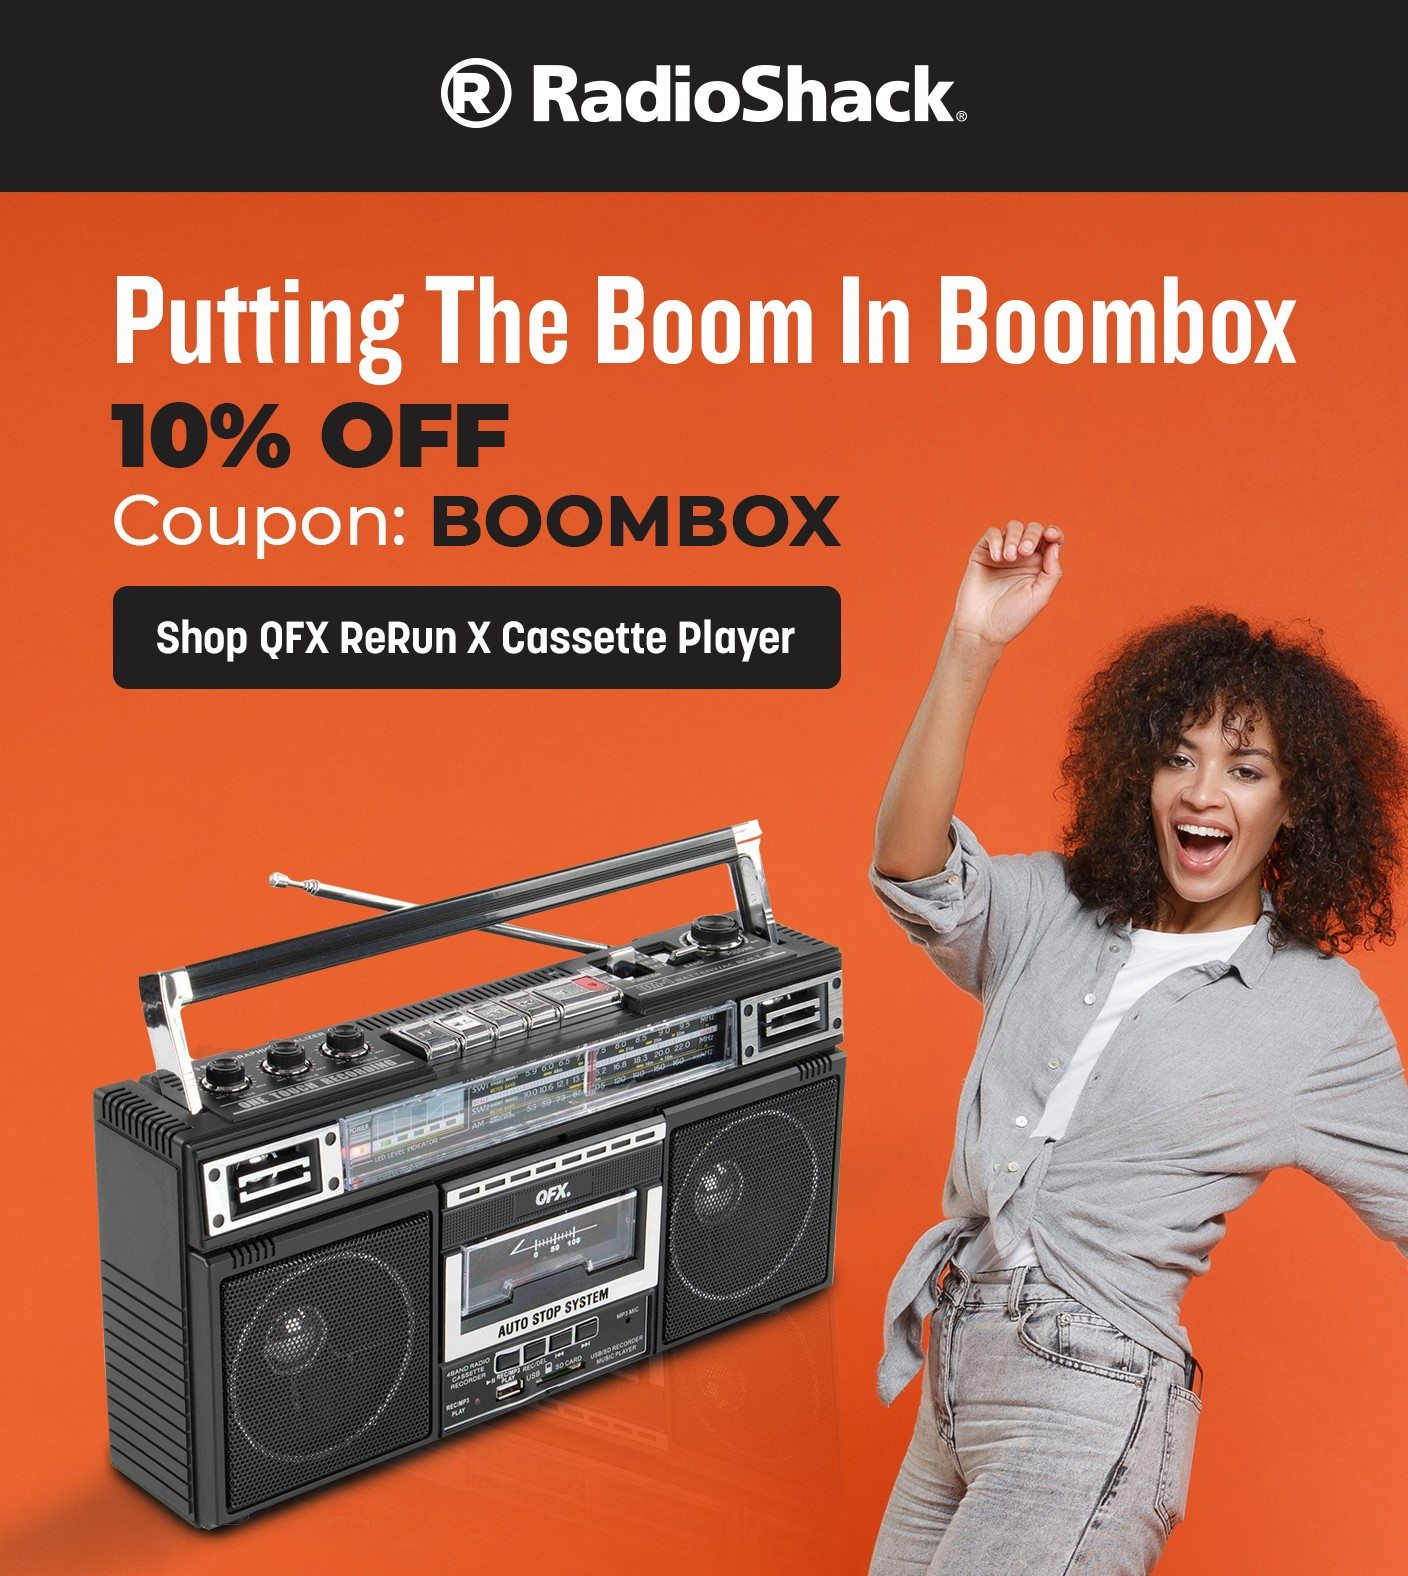 QFX ReRun X Cassette Player Retro Boombox with 4-Band Radio, MP3 Converter, and Bluetooth